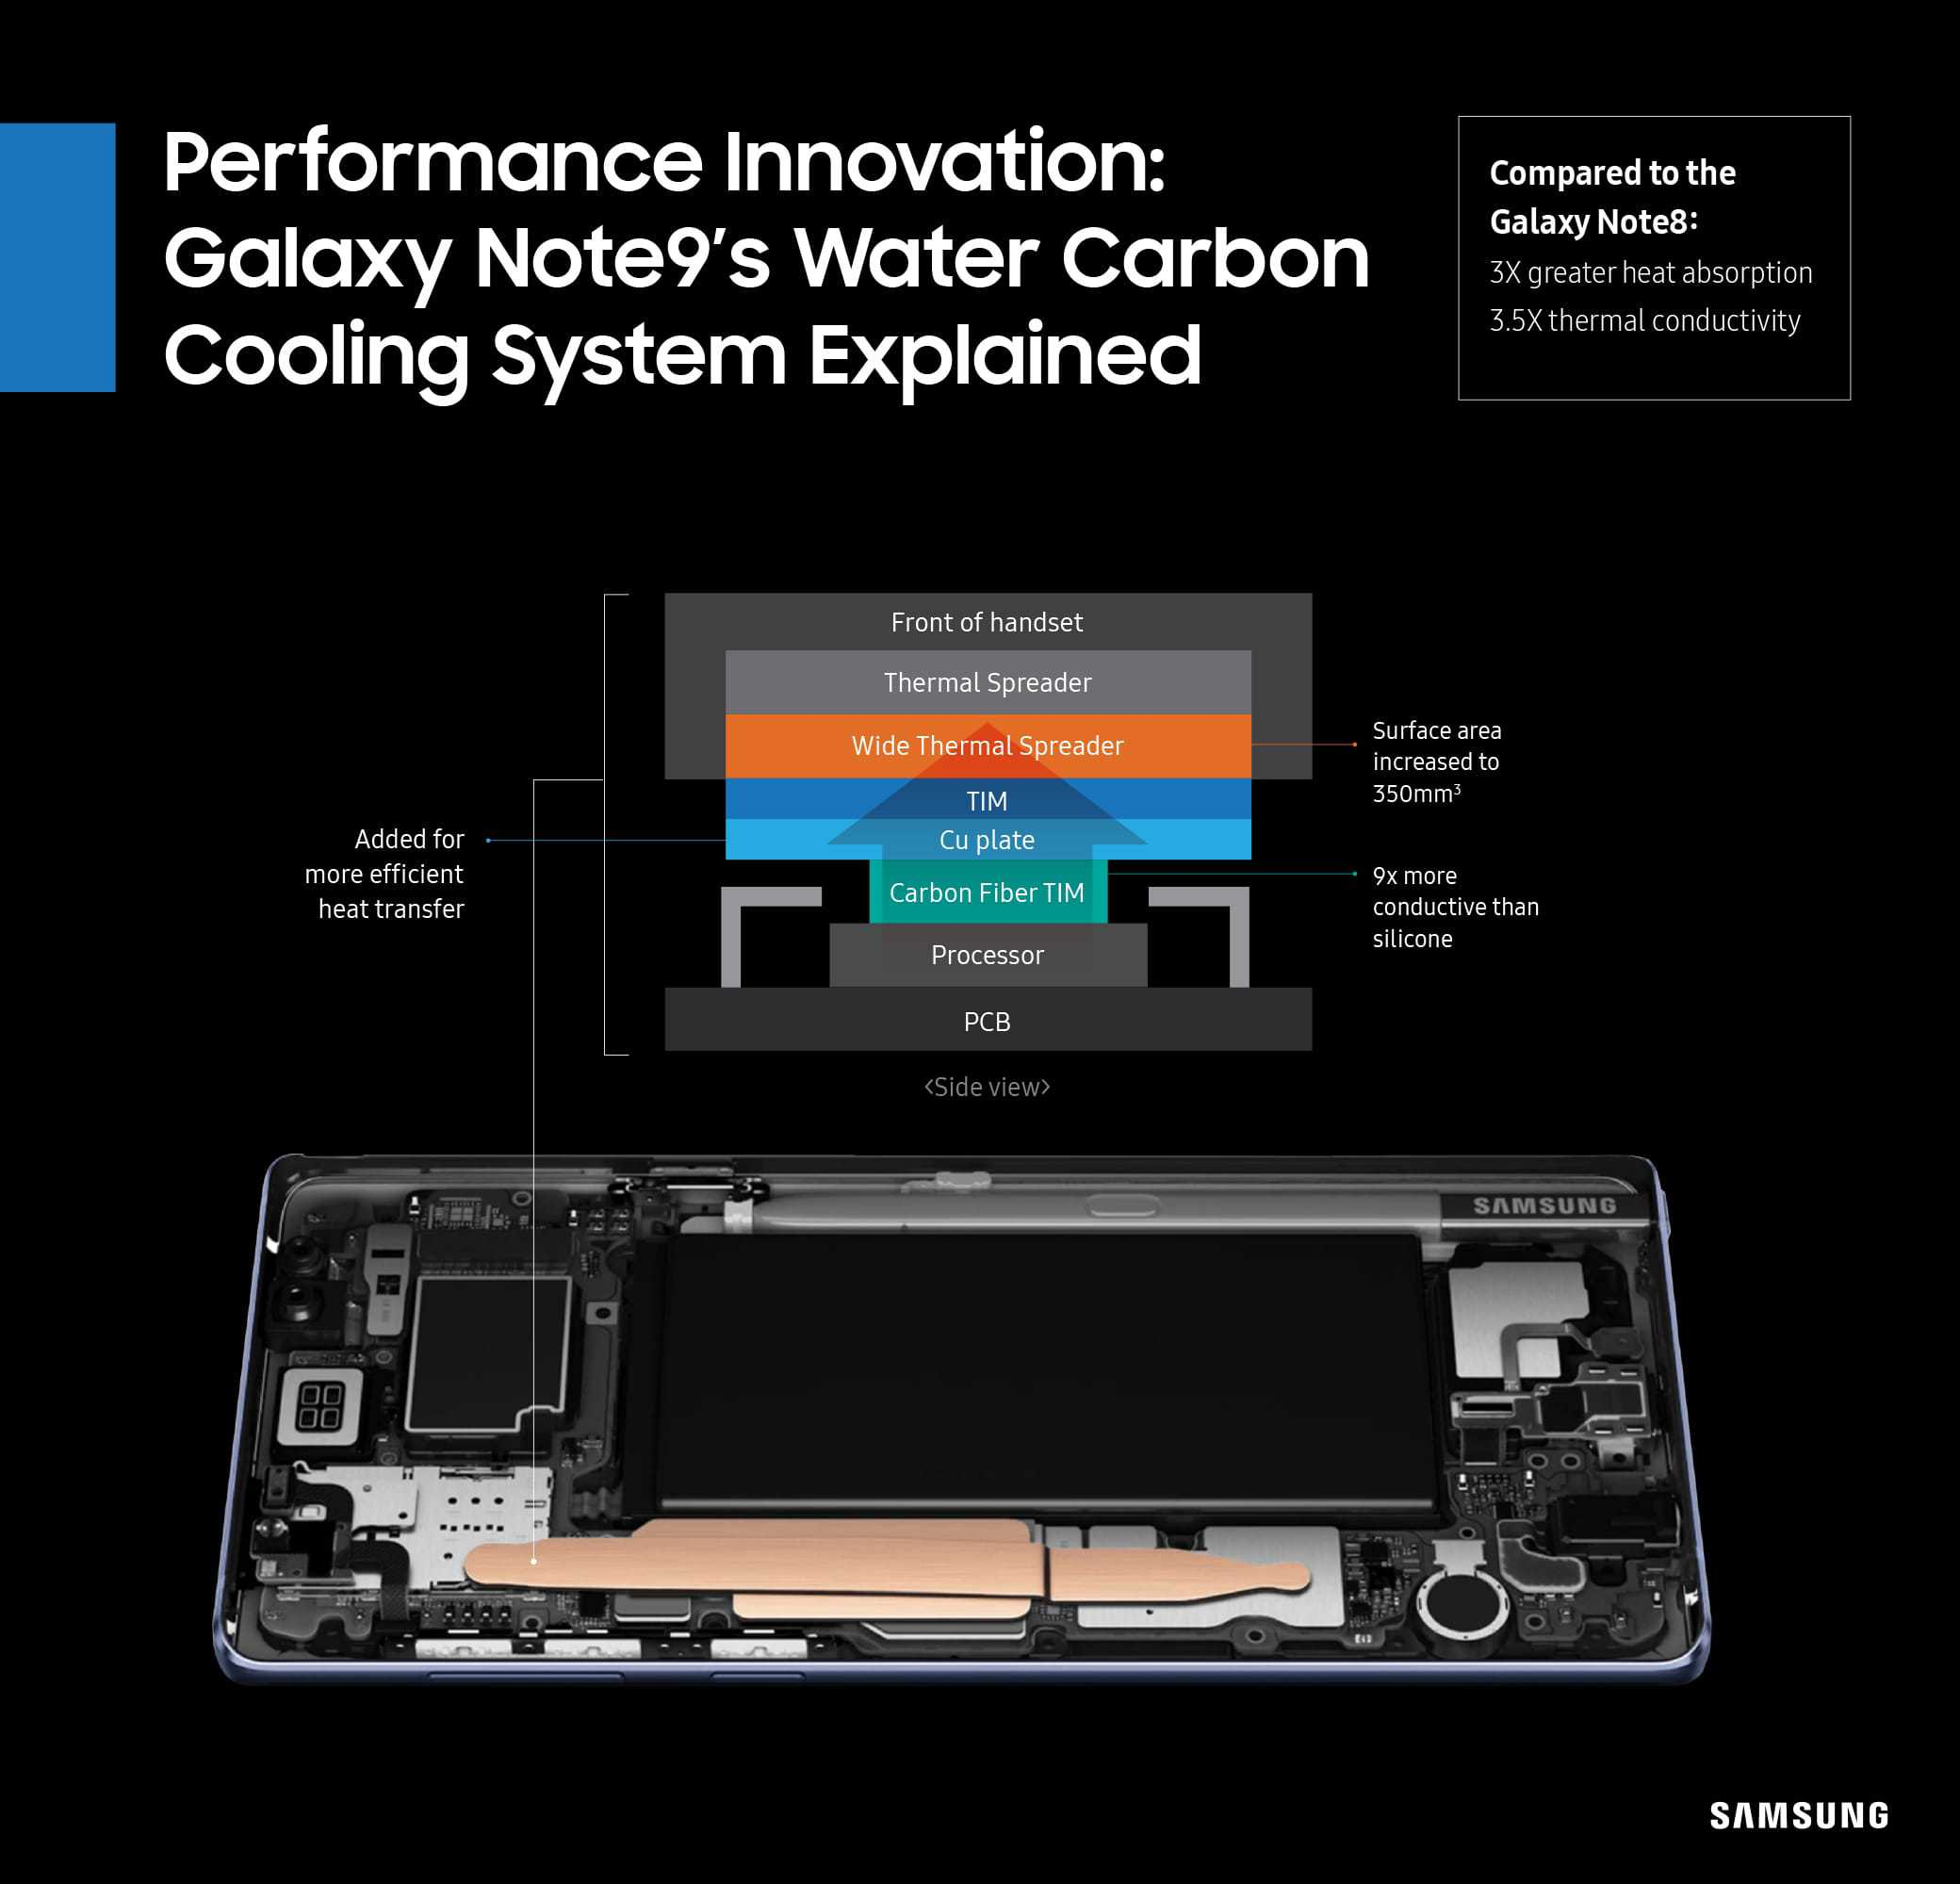 Samsung Details Galaxy Note 9 Water Carbon Cooling System